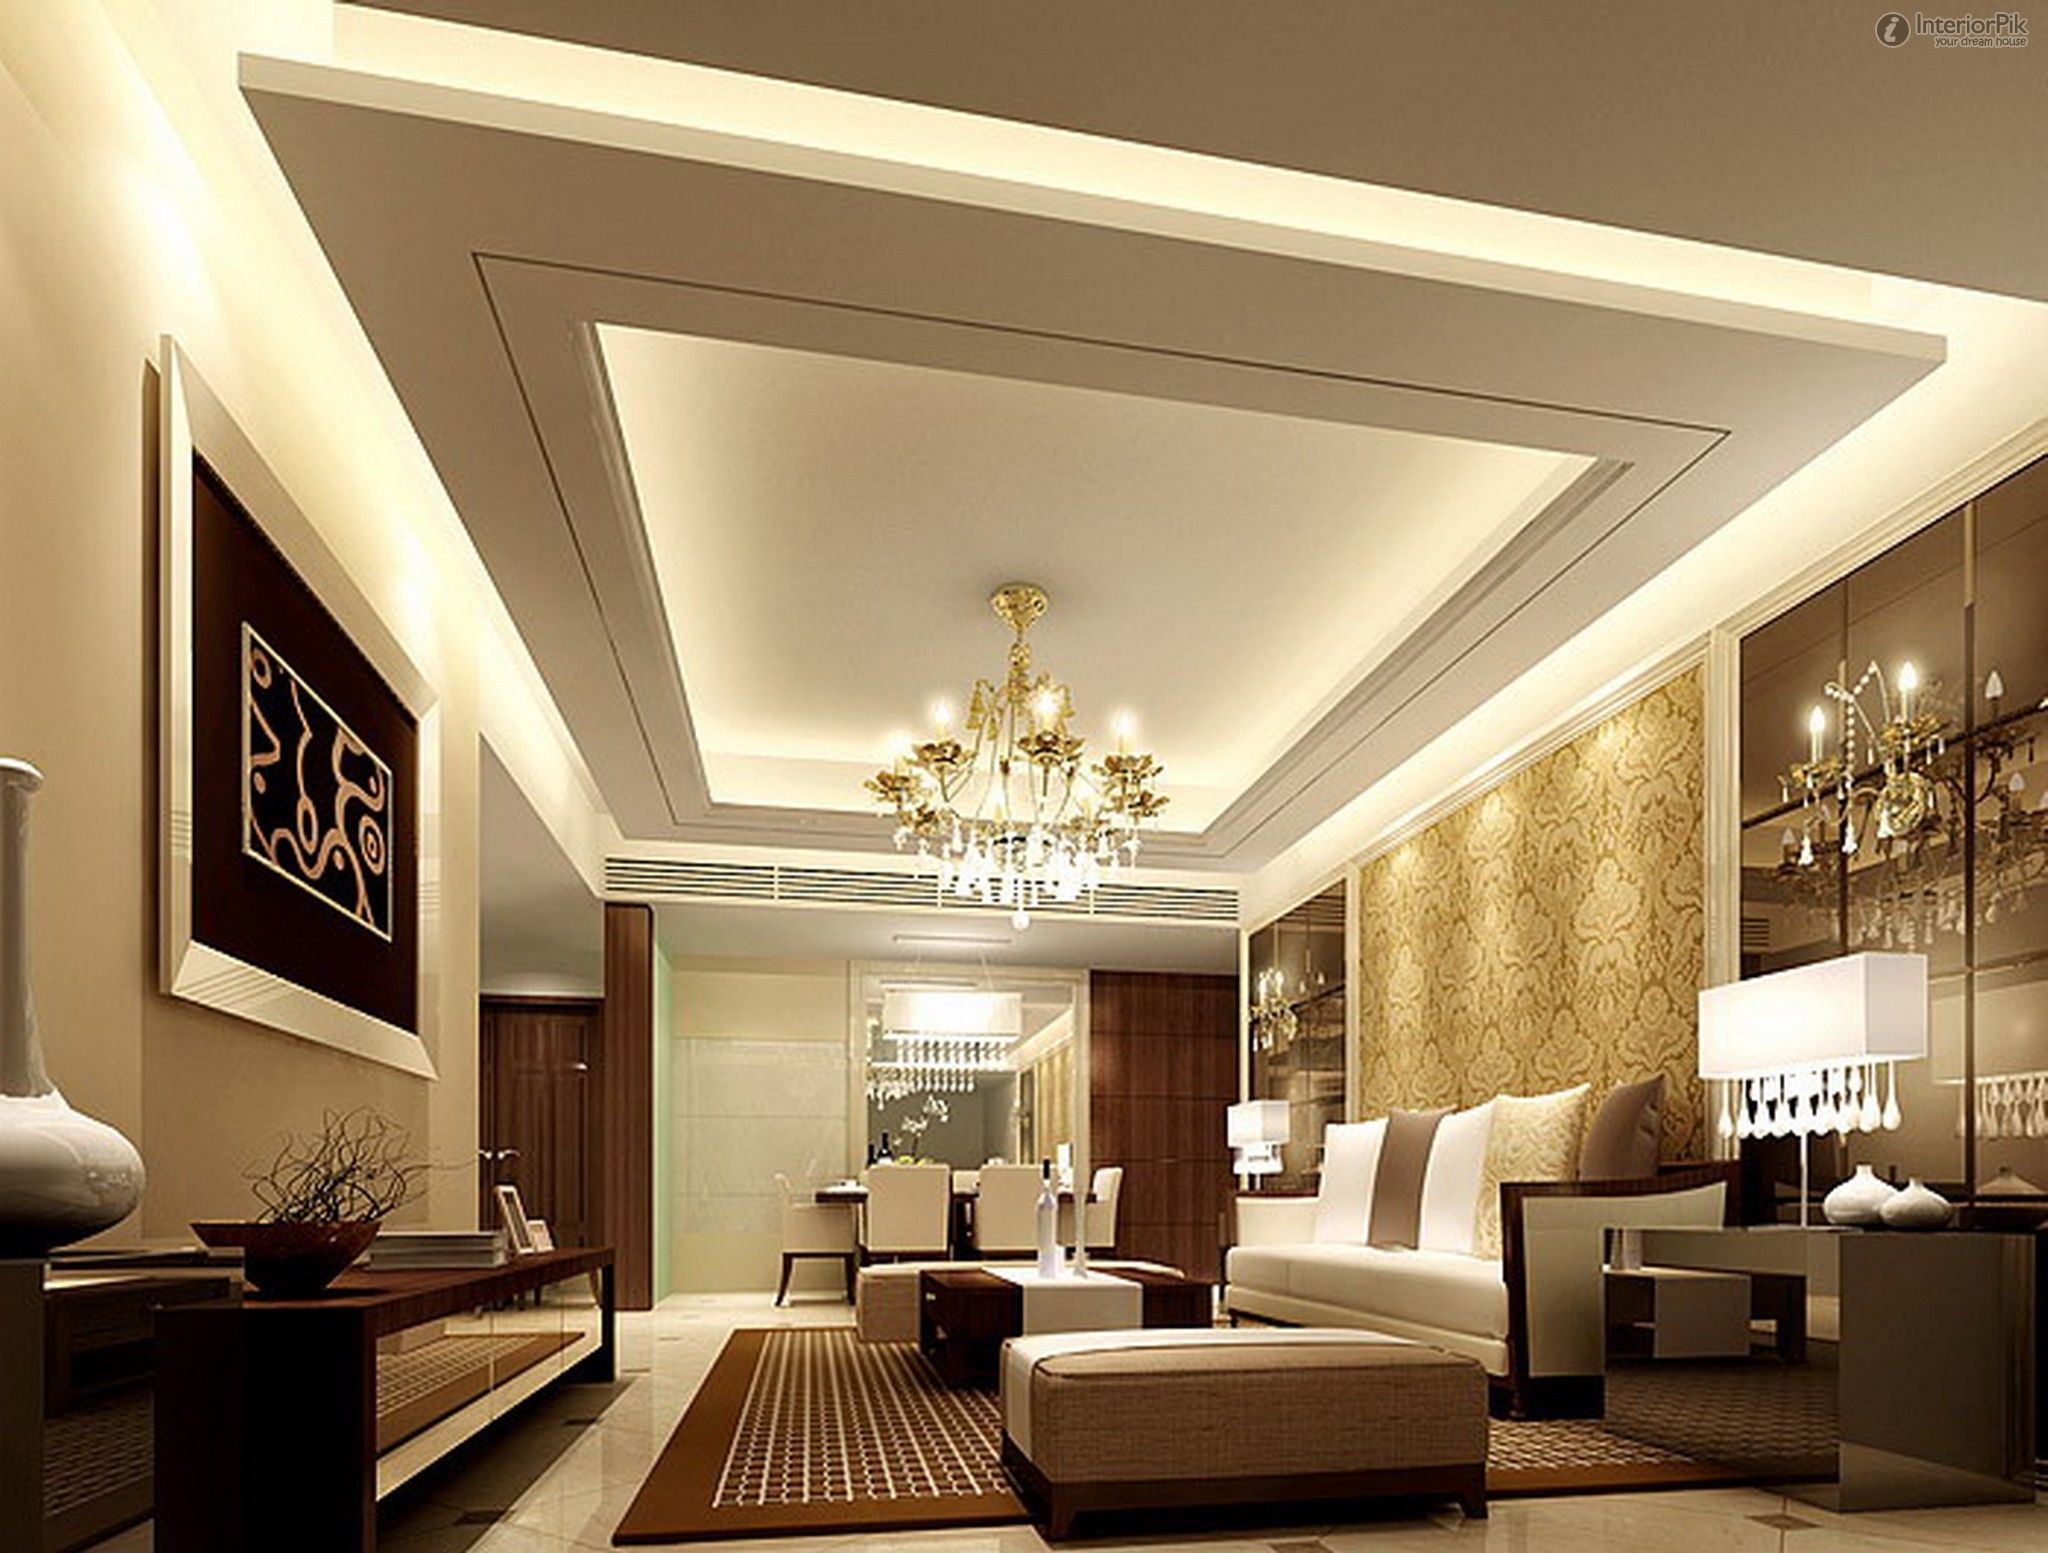 All pictures of pop design for ceiling find show all pictures of pop - Interesting Info About Ceiling Design And Suspended Ceiling If You Have A Suspended Ceiling It Is A Popular Element That Serves A Great Purpose In The